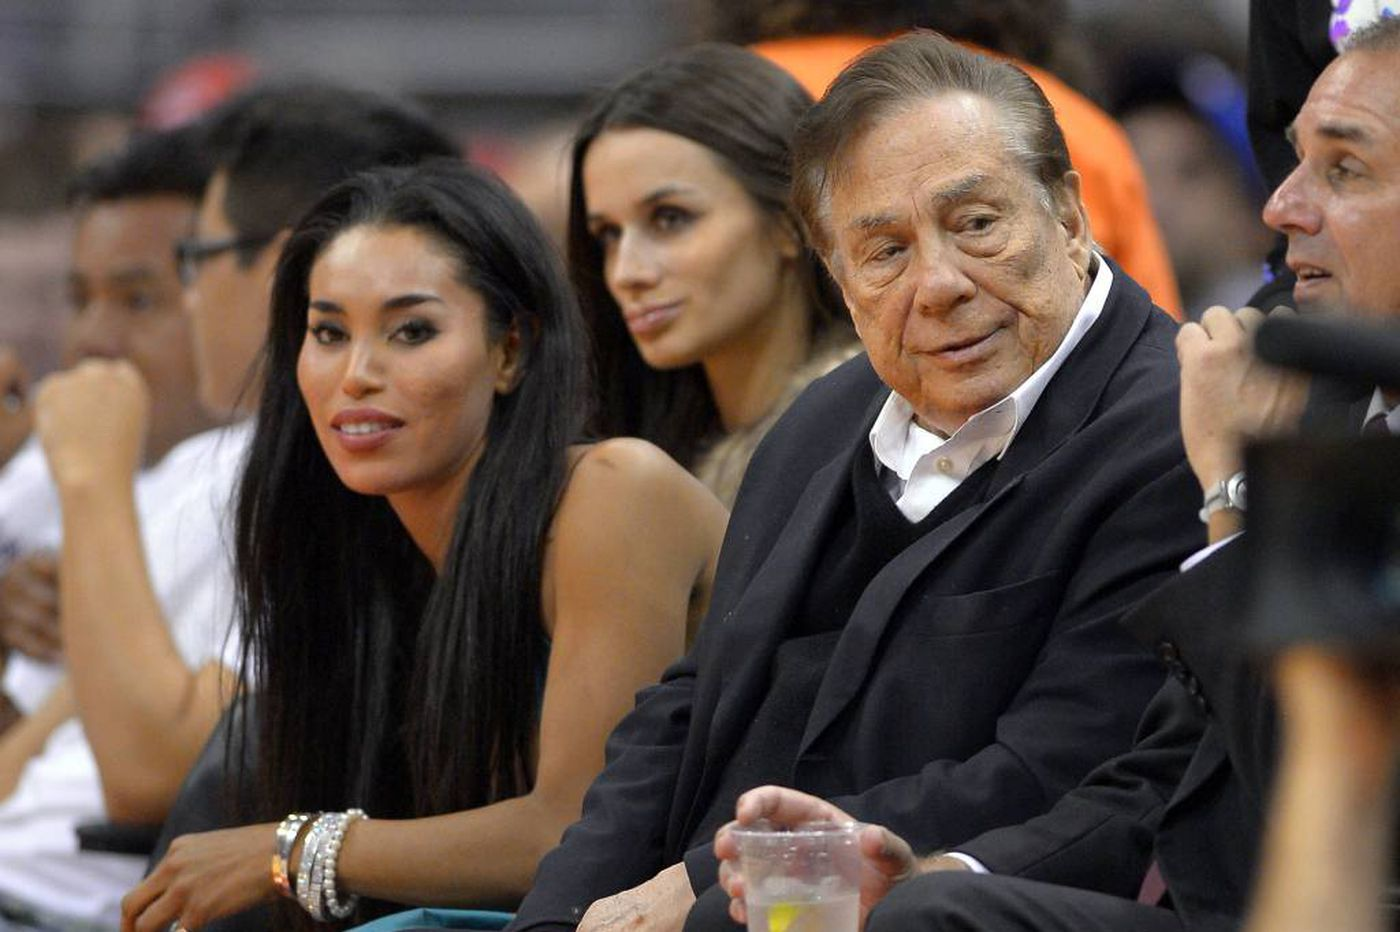 Sterling banned for life by NBA